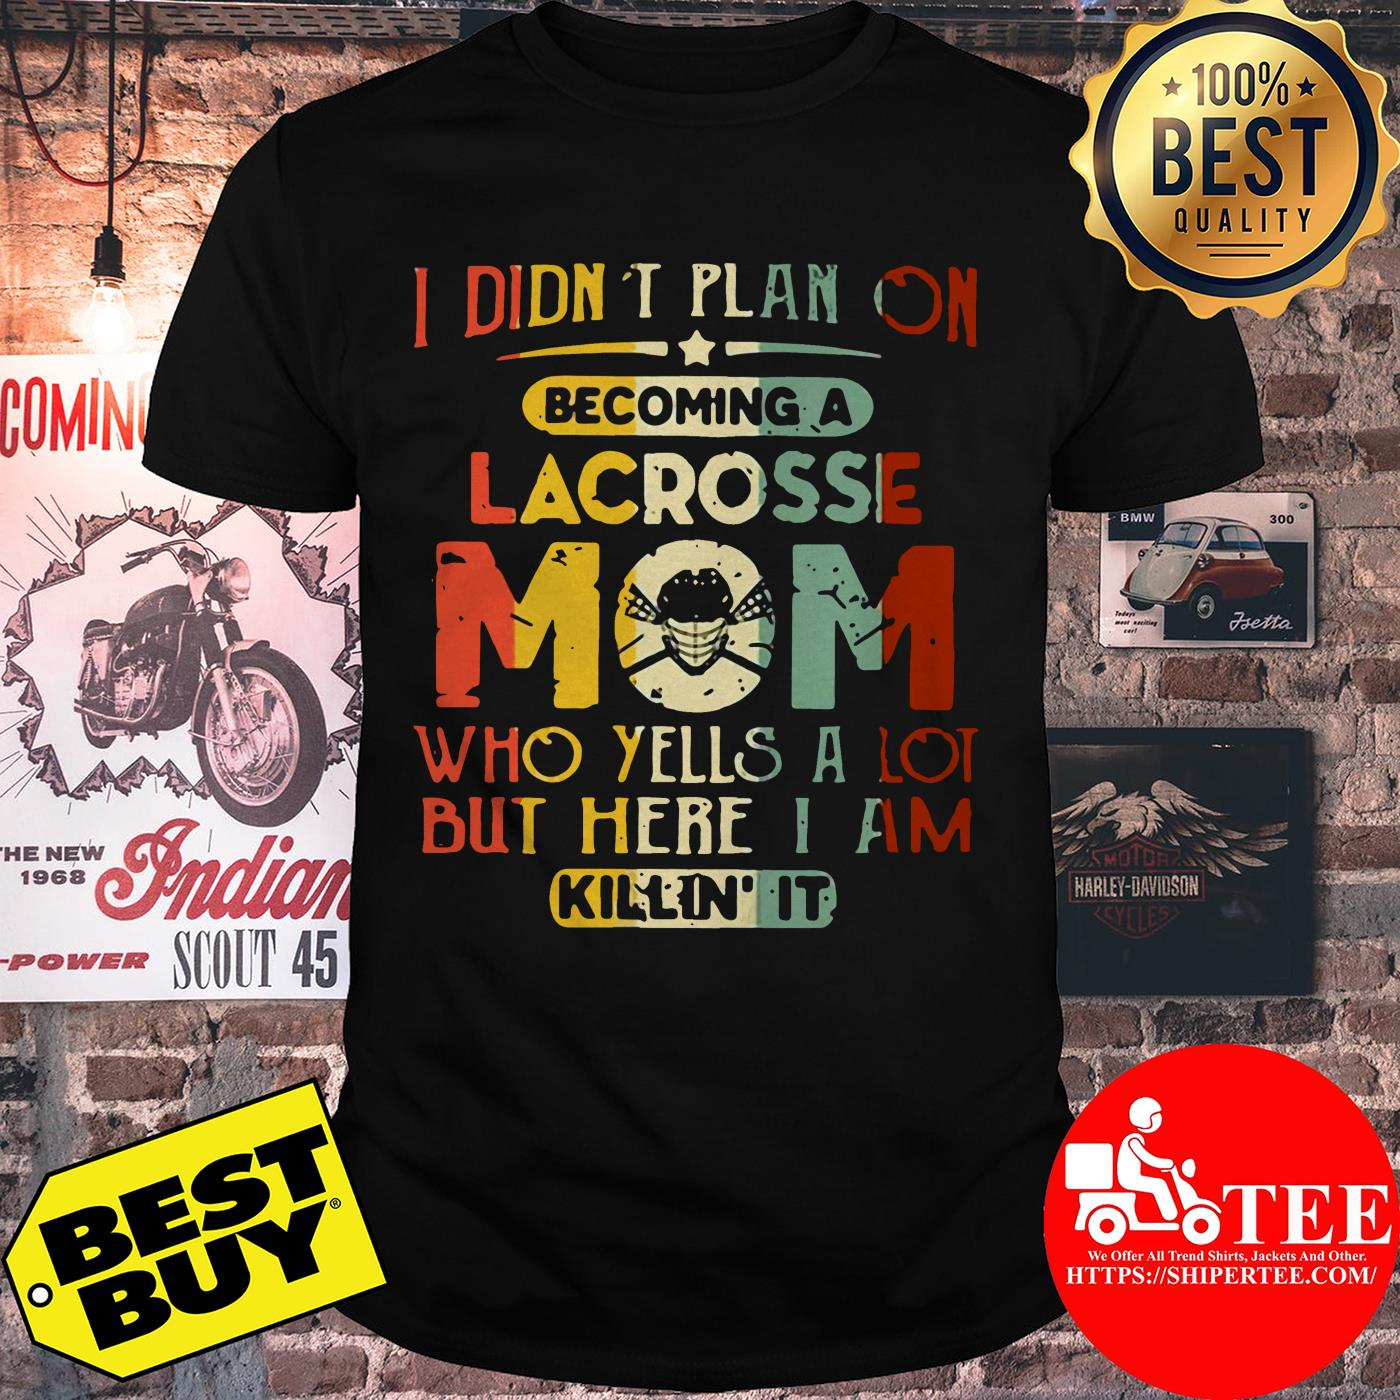 I Didn't Plan On Becoming Lacrosse Mom Who Yells A Lot But Here I Am Killin' It shirt